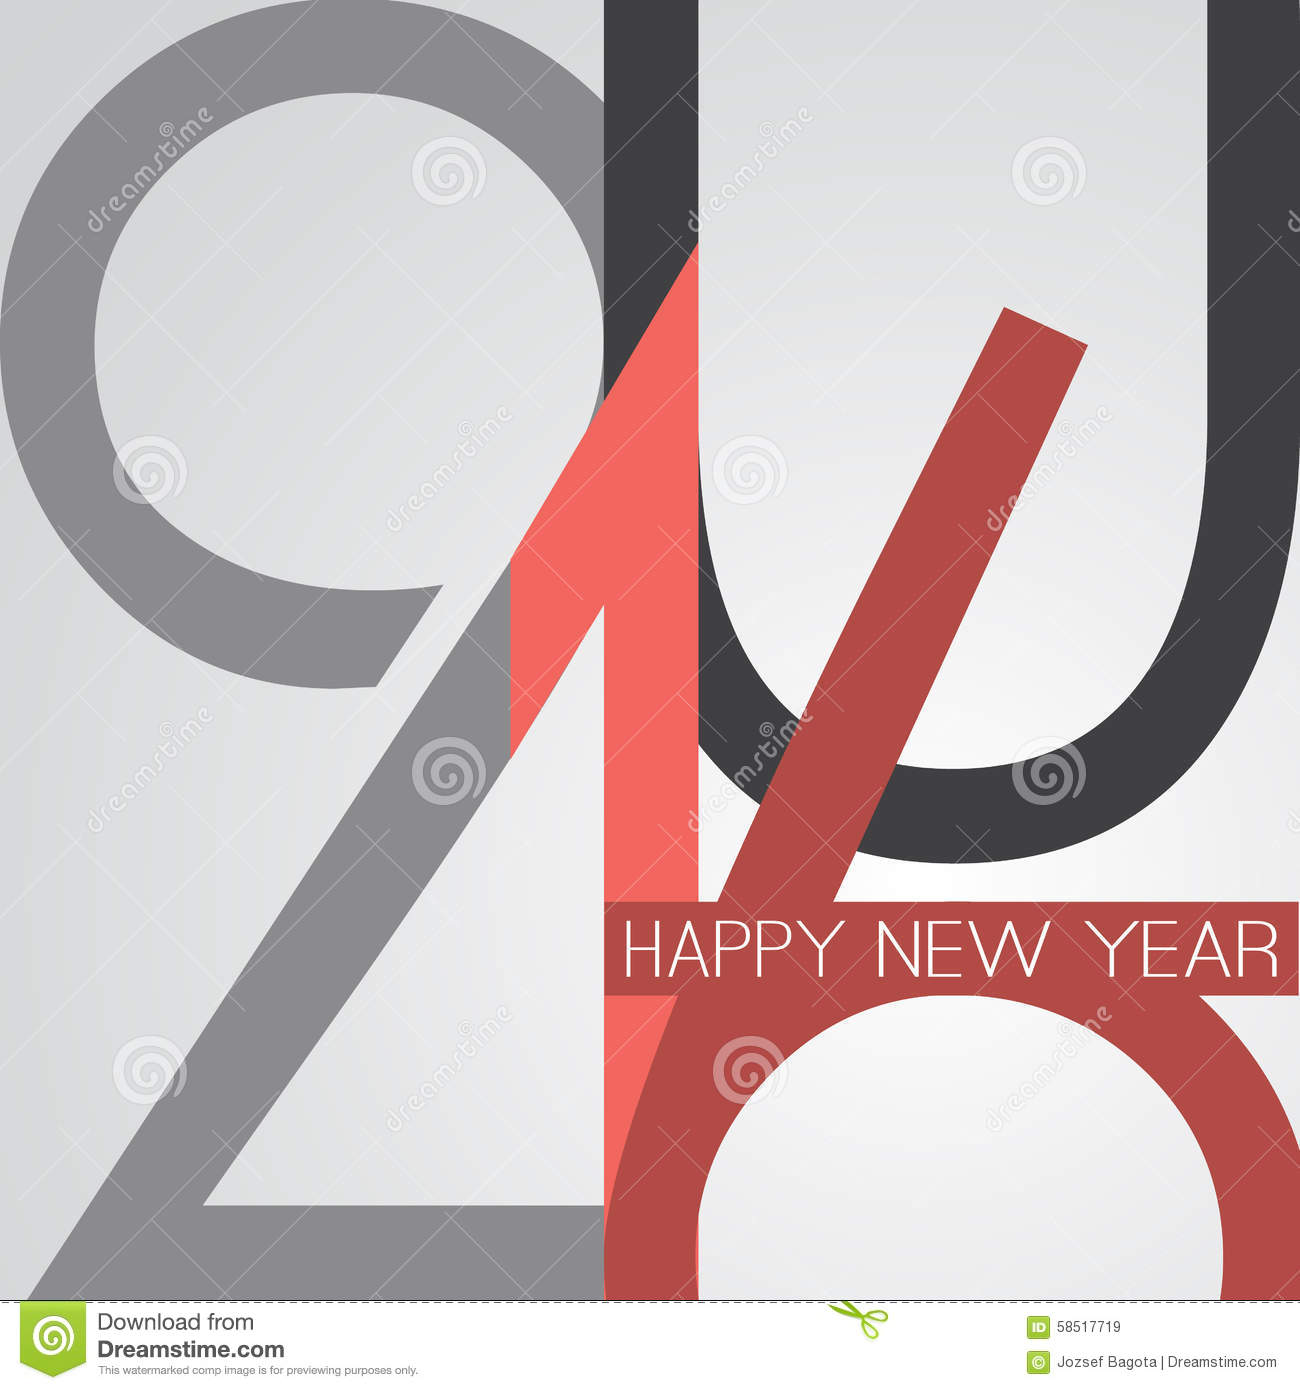 best wishes abstract retro style happy new year greeting card or background creative design